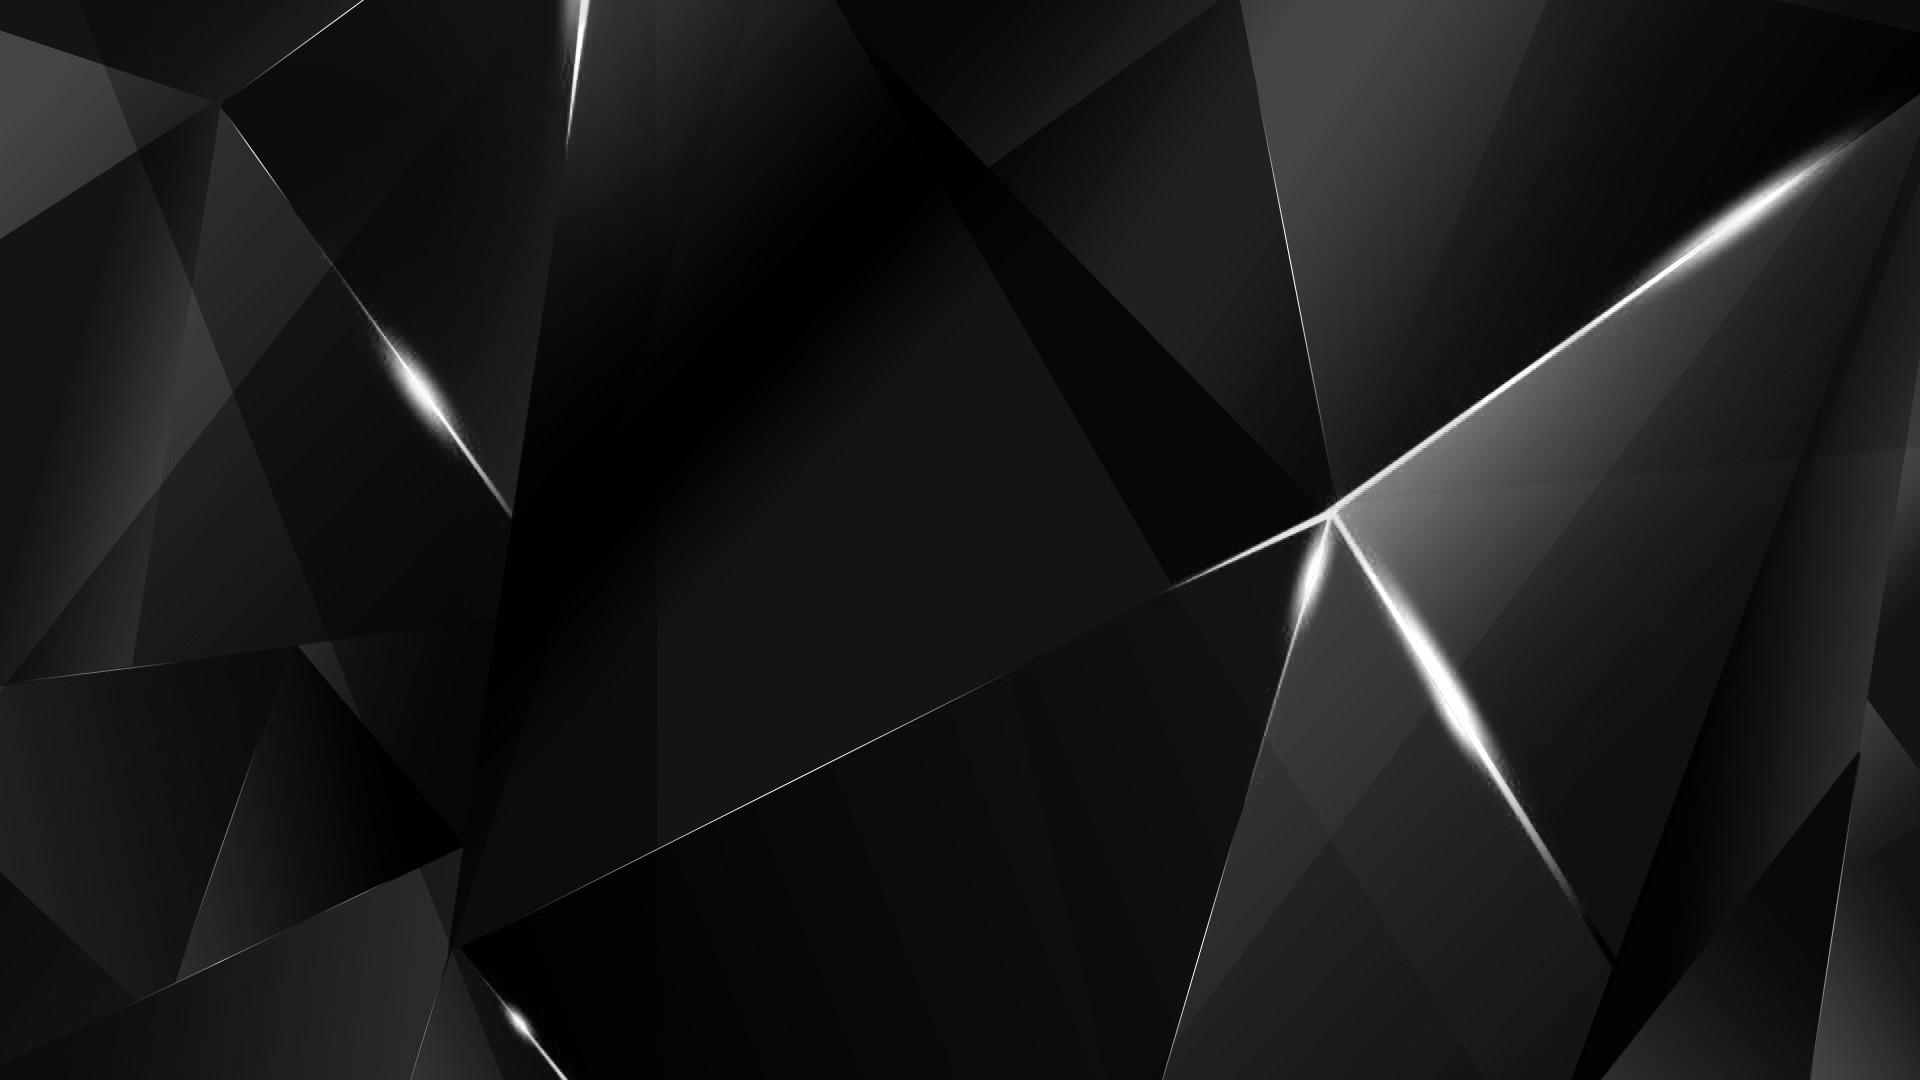 Black Abstract Wallpapers: Black And White Abstract Wallpapers (73+ Images